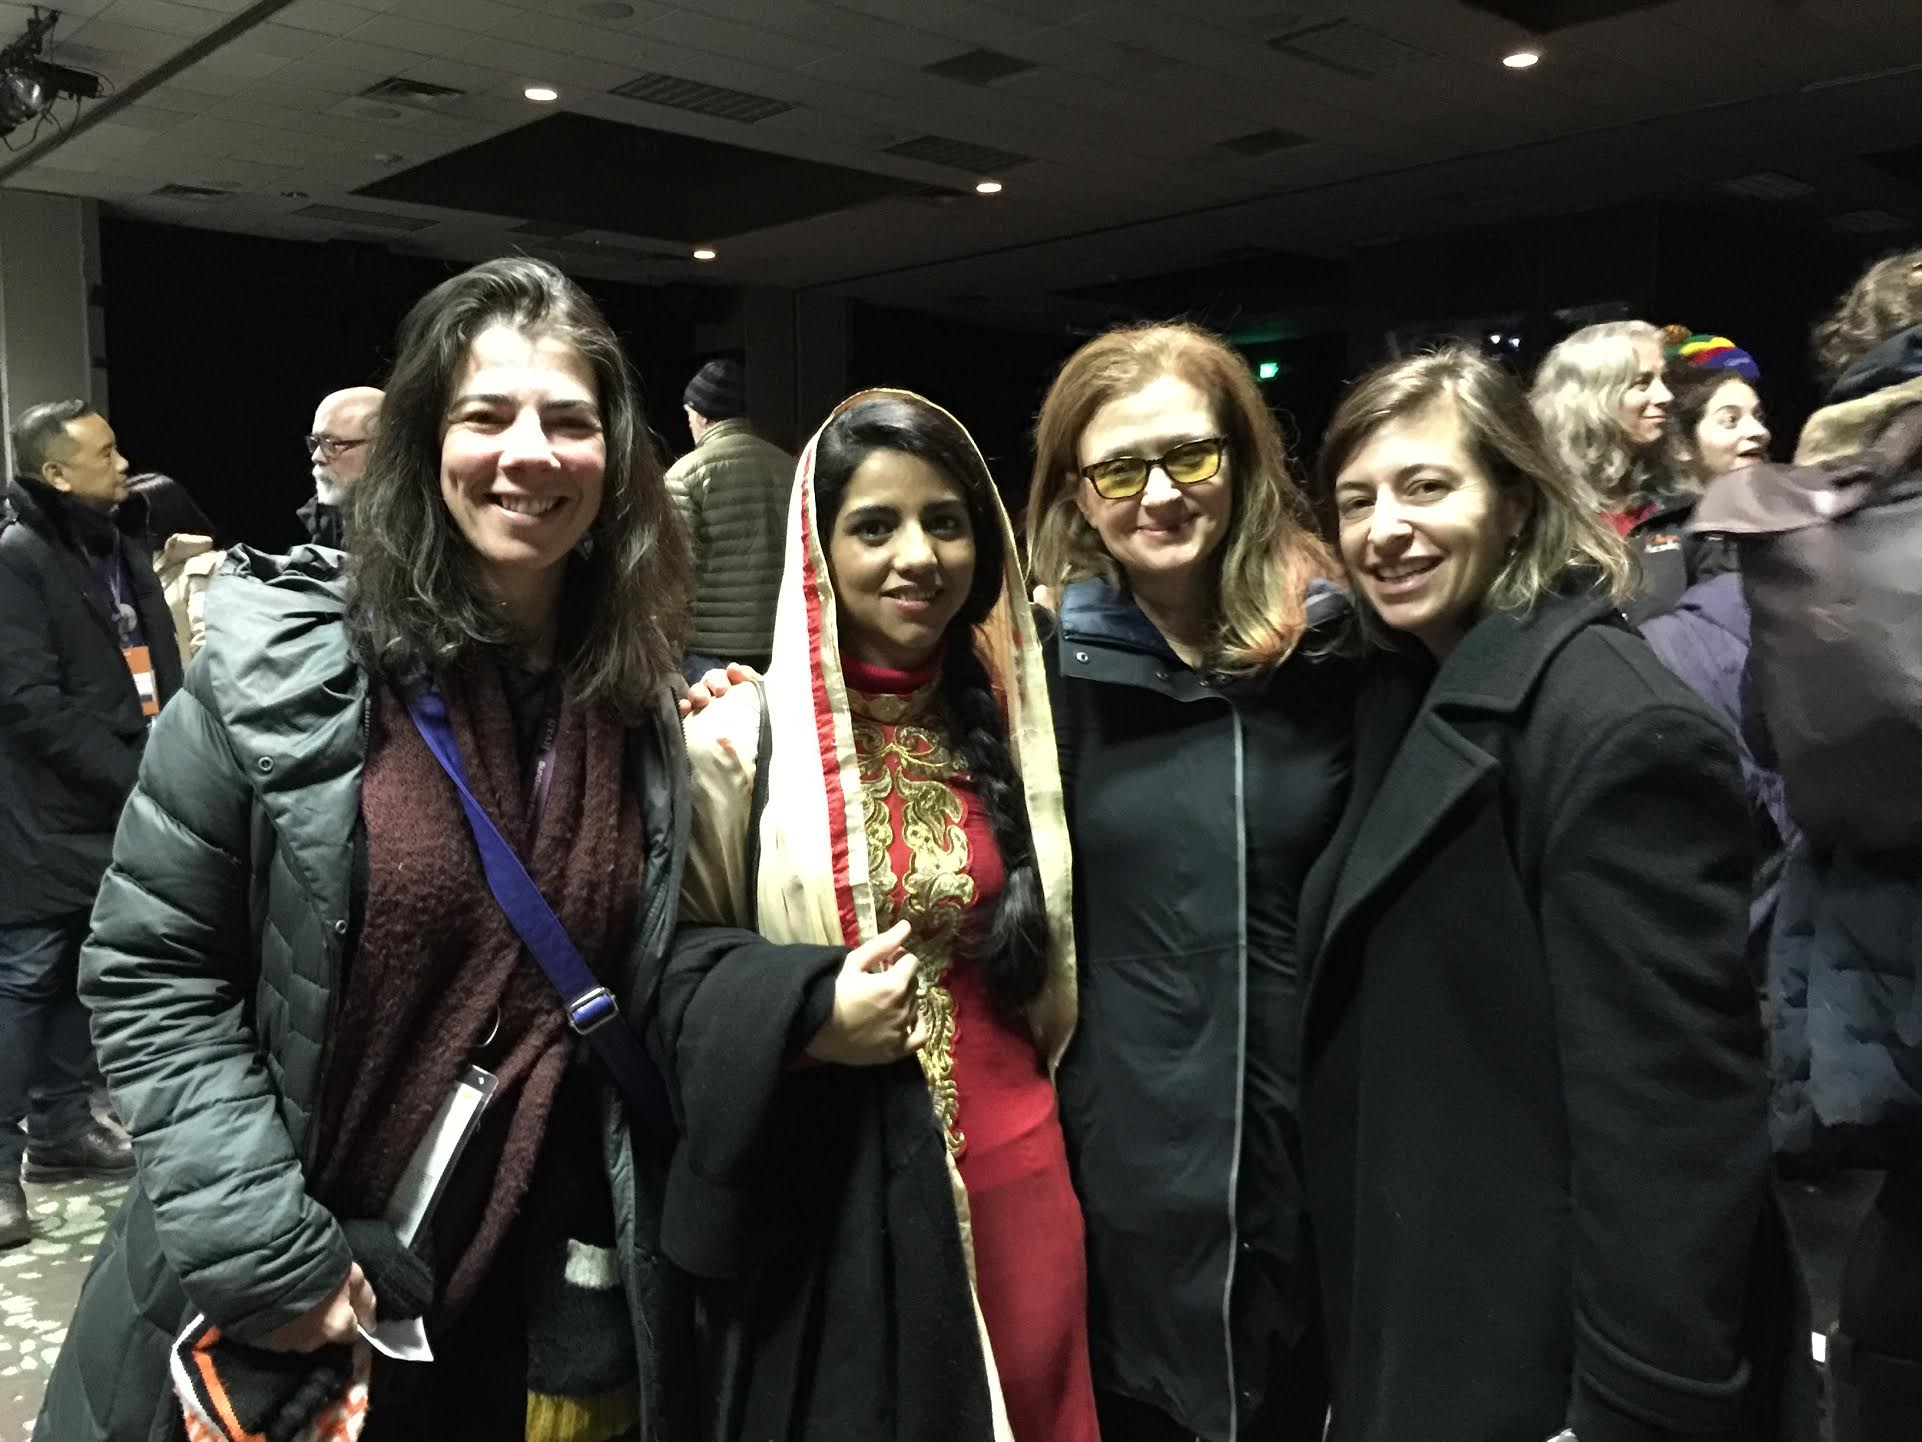 Executive Director Jenni Wolfson, Co-Founder Wendy Ettinger, and Co-Founder Julie Parker Benello with Sonita Alizadeh at a Sundance screening of SONITA